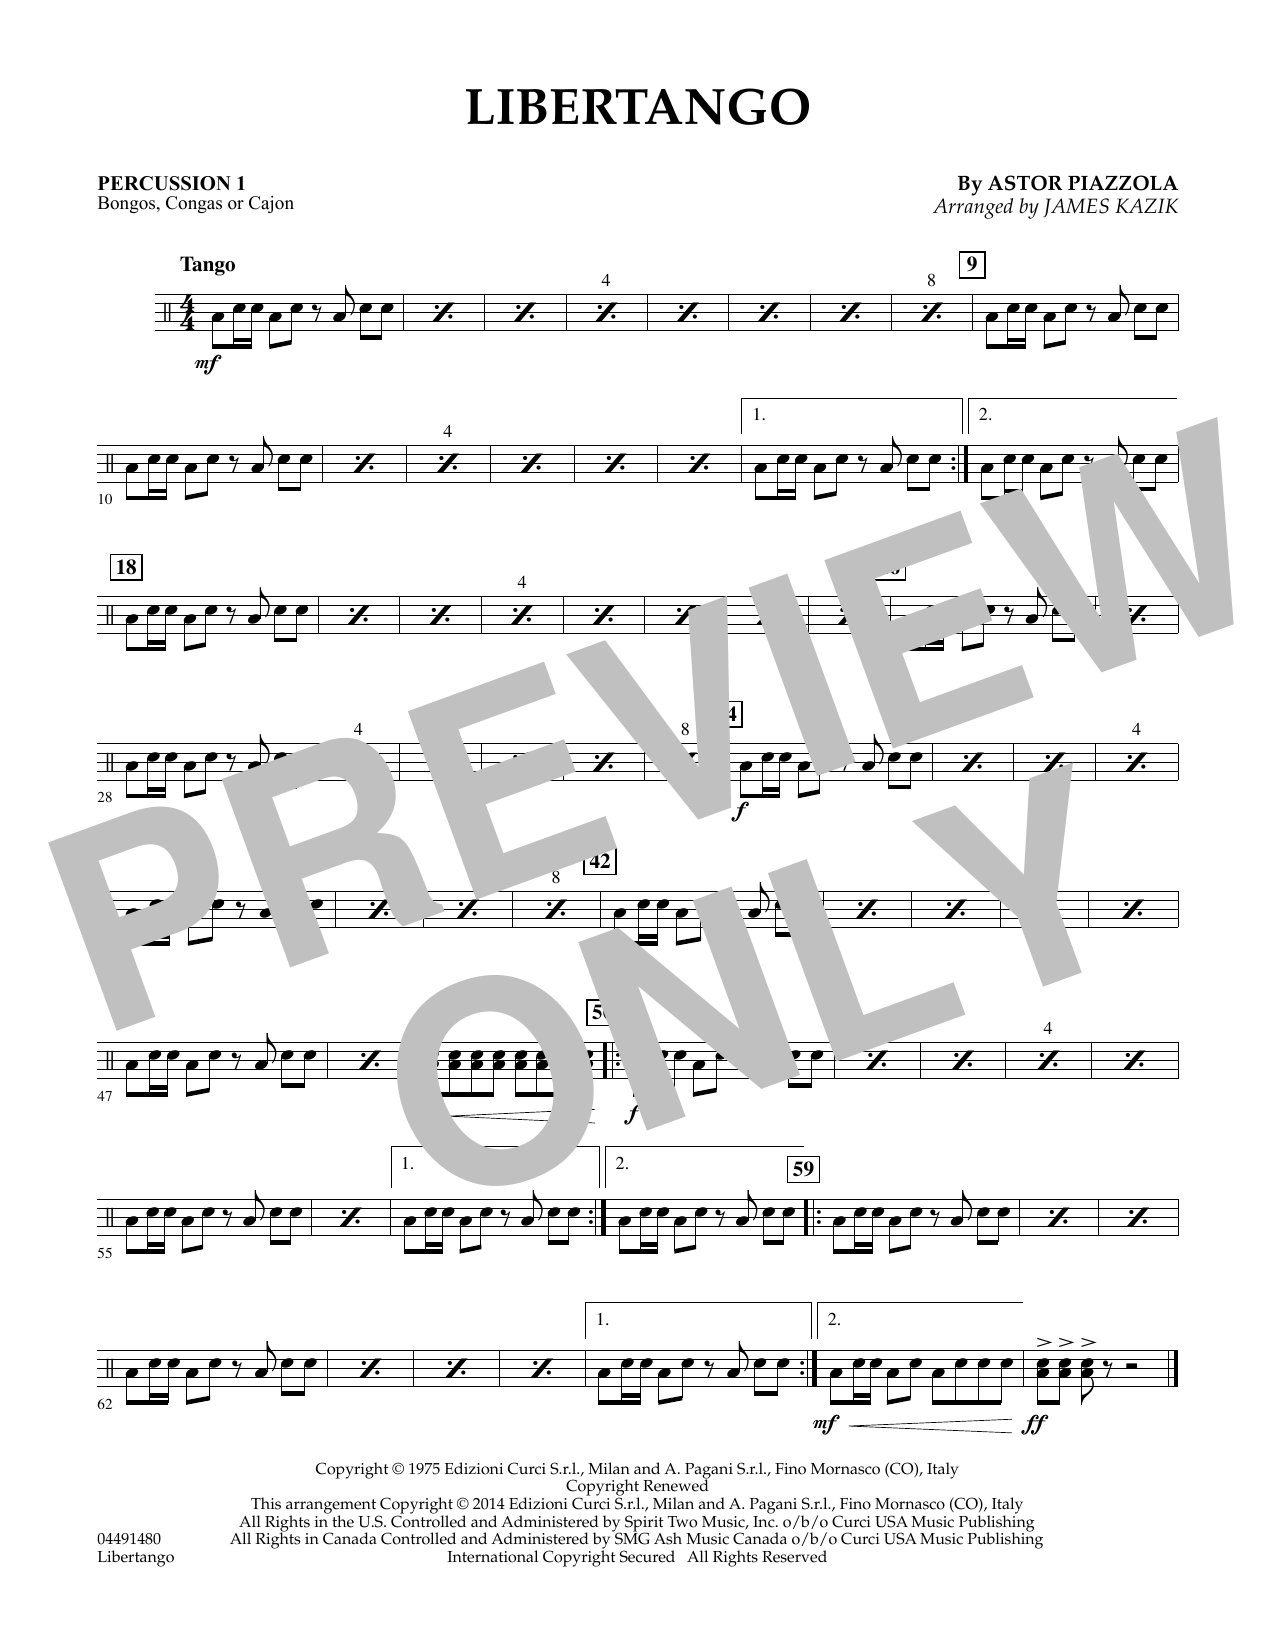 James Kazik Libertango - Percussion 1 sheet music preview music notes and score for Orchestra including 1 page(s)